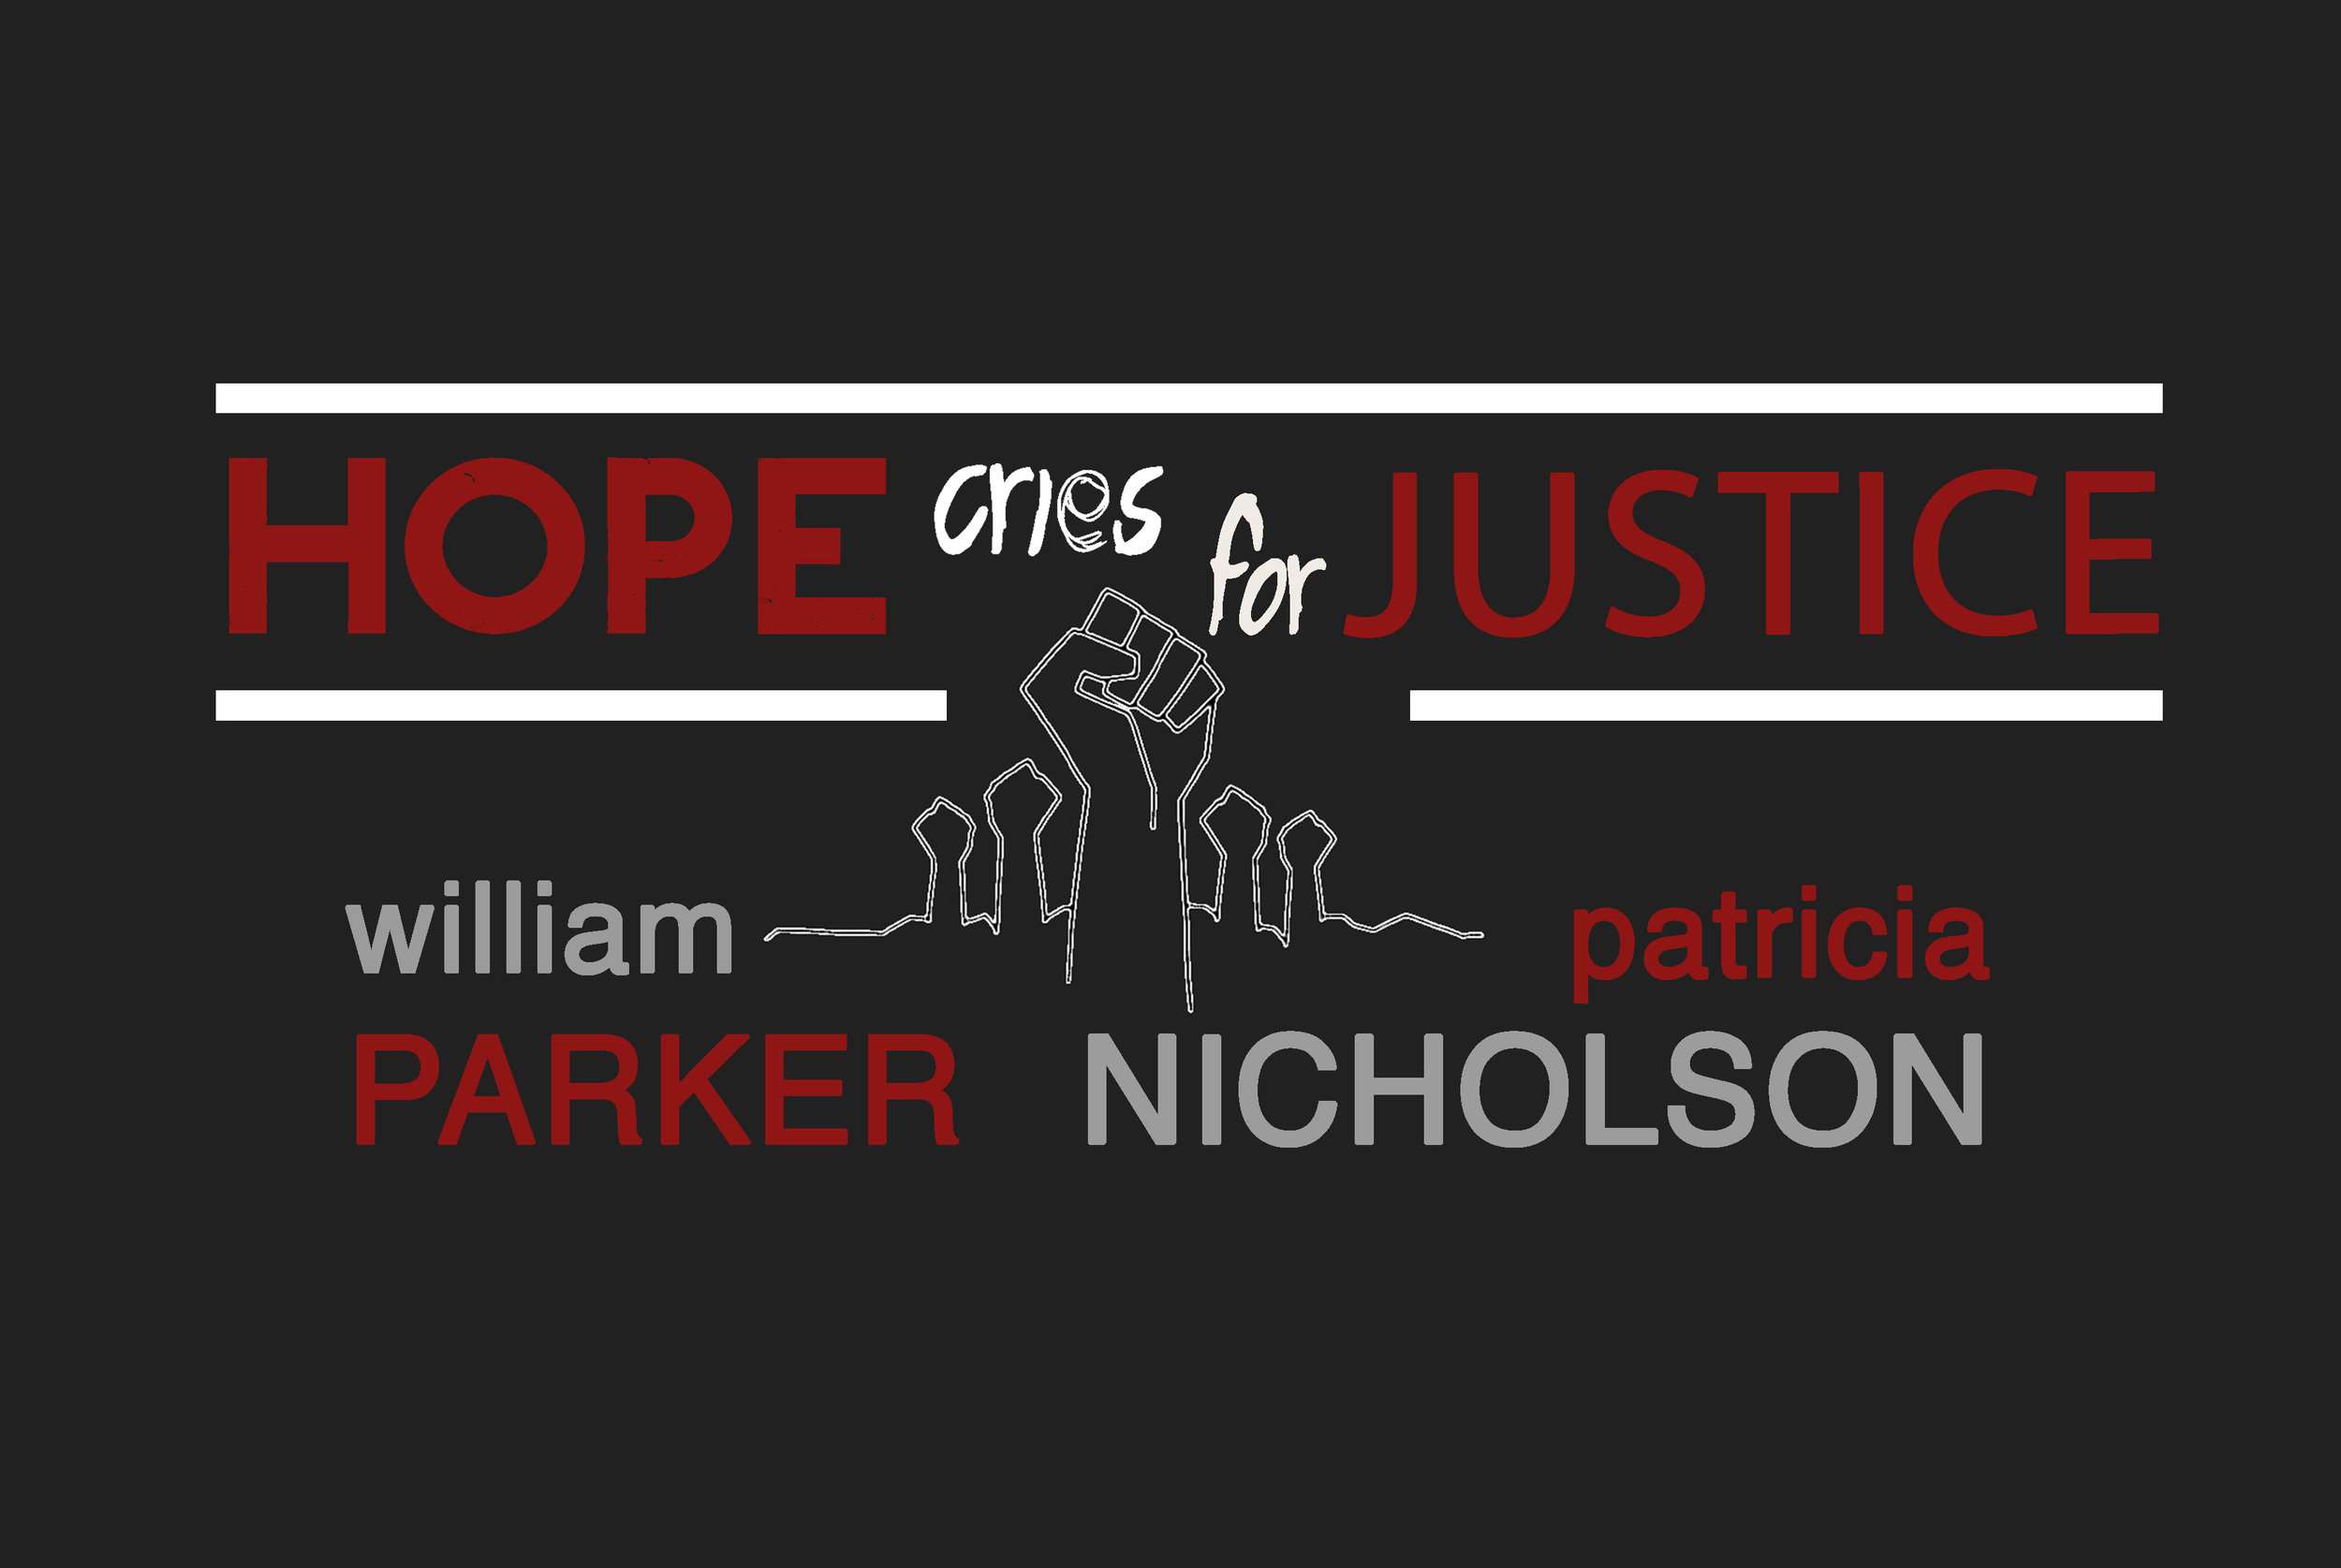 PNP Banner Justice cries for hope for website.jpg